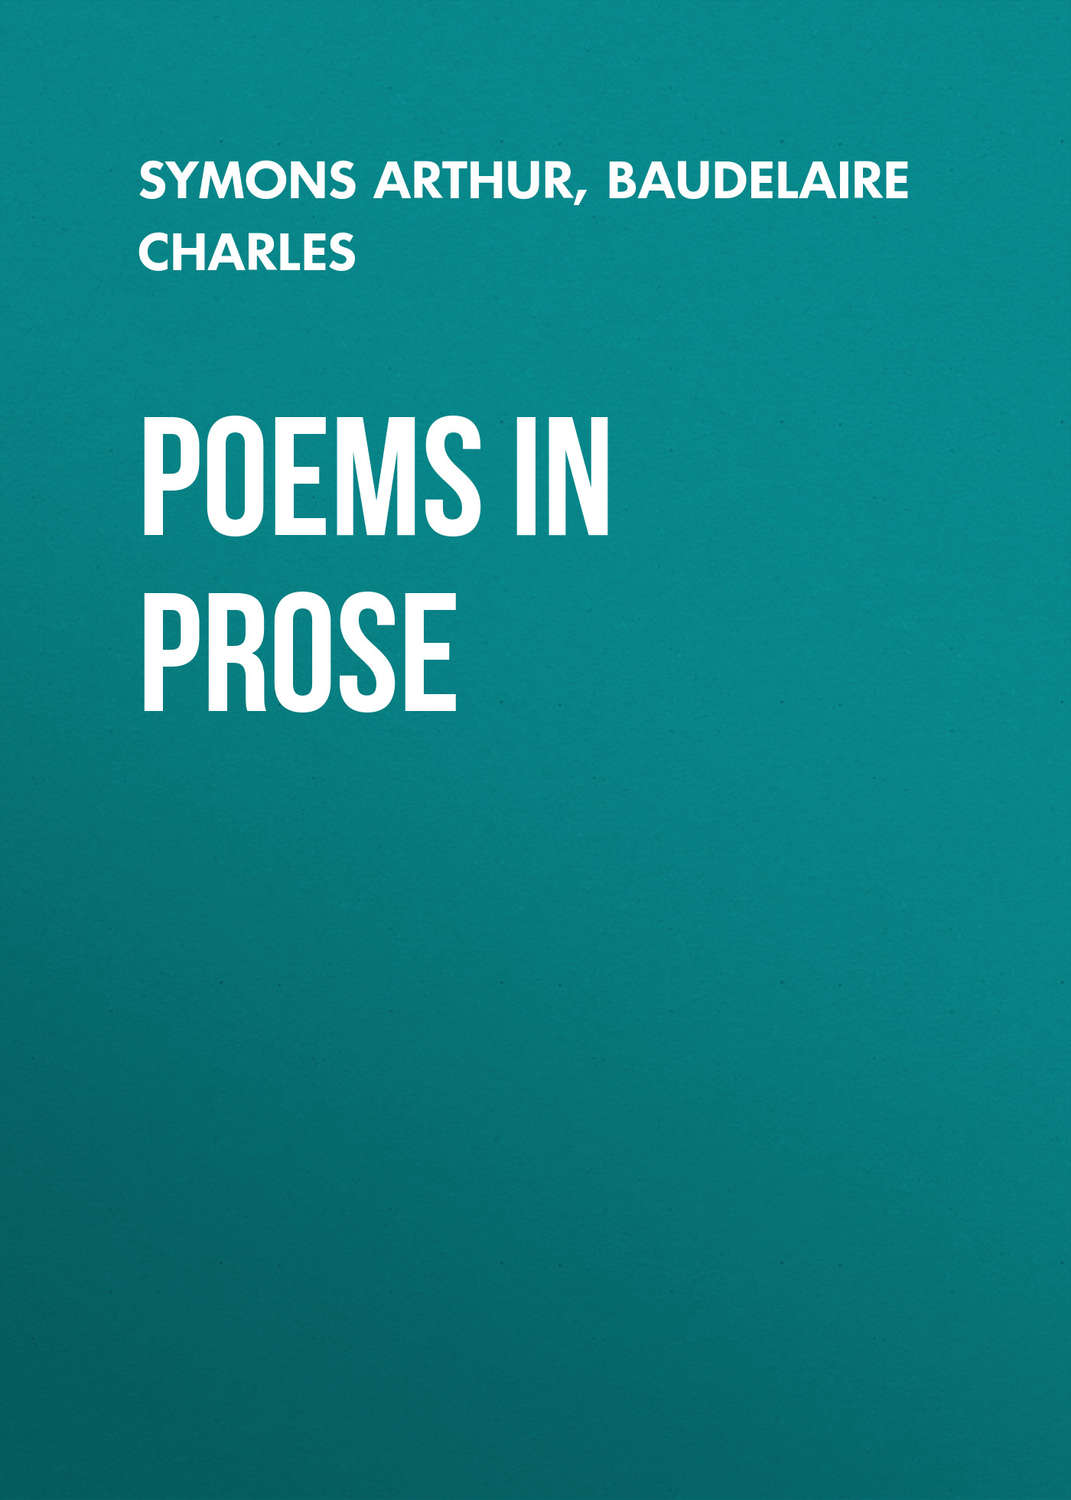 an analysis of literary techniques and writing styles in twenty prose poems by charles baudelaire